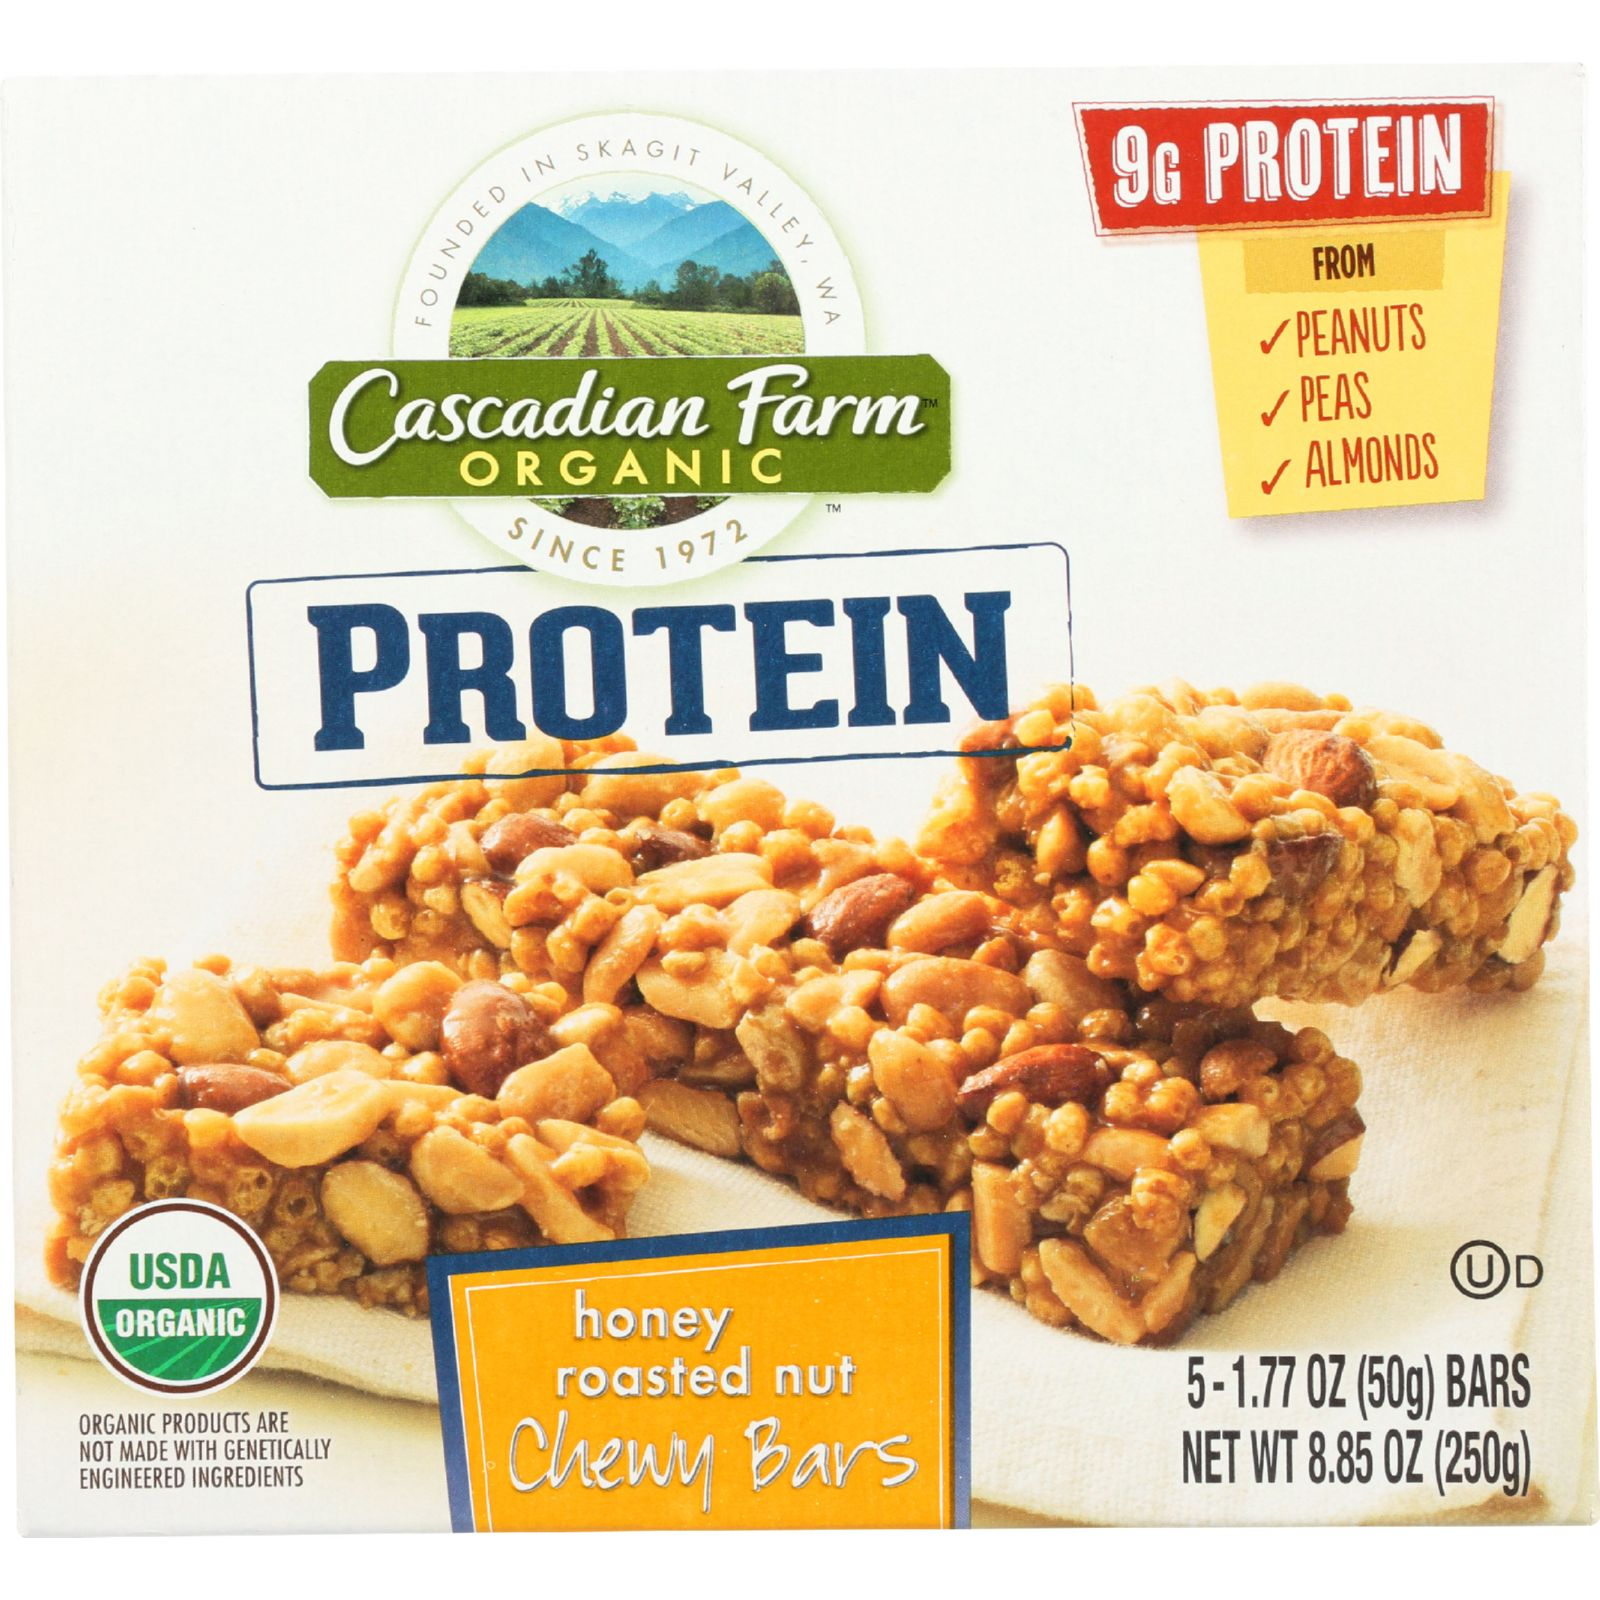 Cascadian Farm Granola Bar - Organic - Protein - Honey Roasted Nut